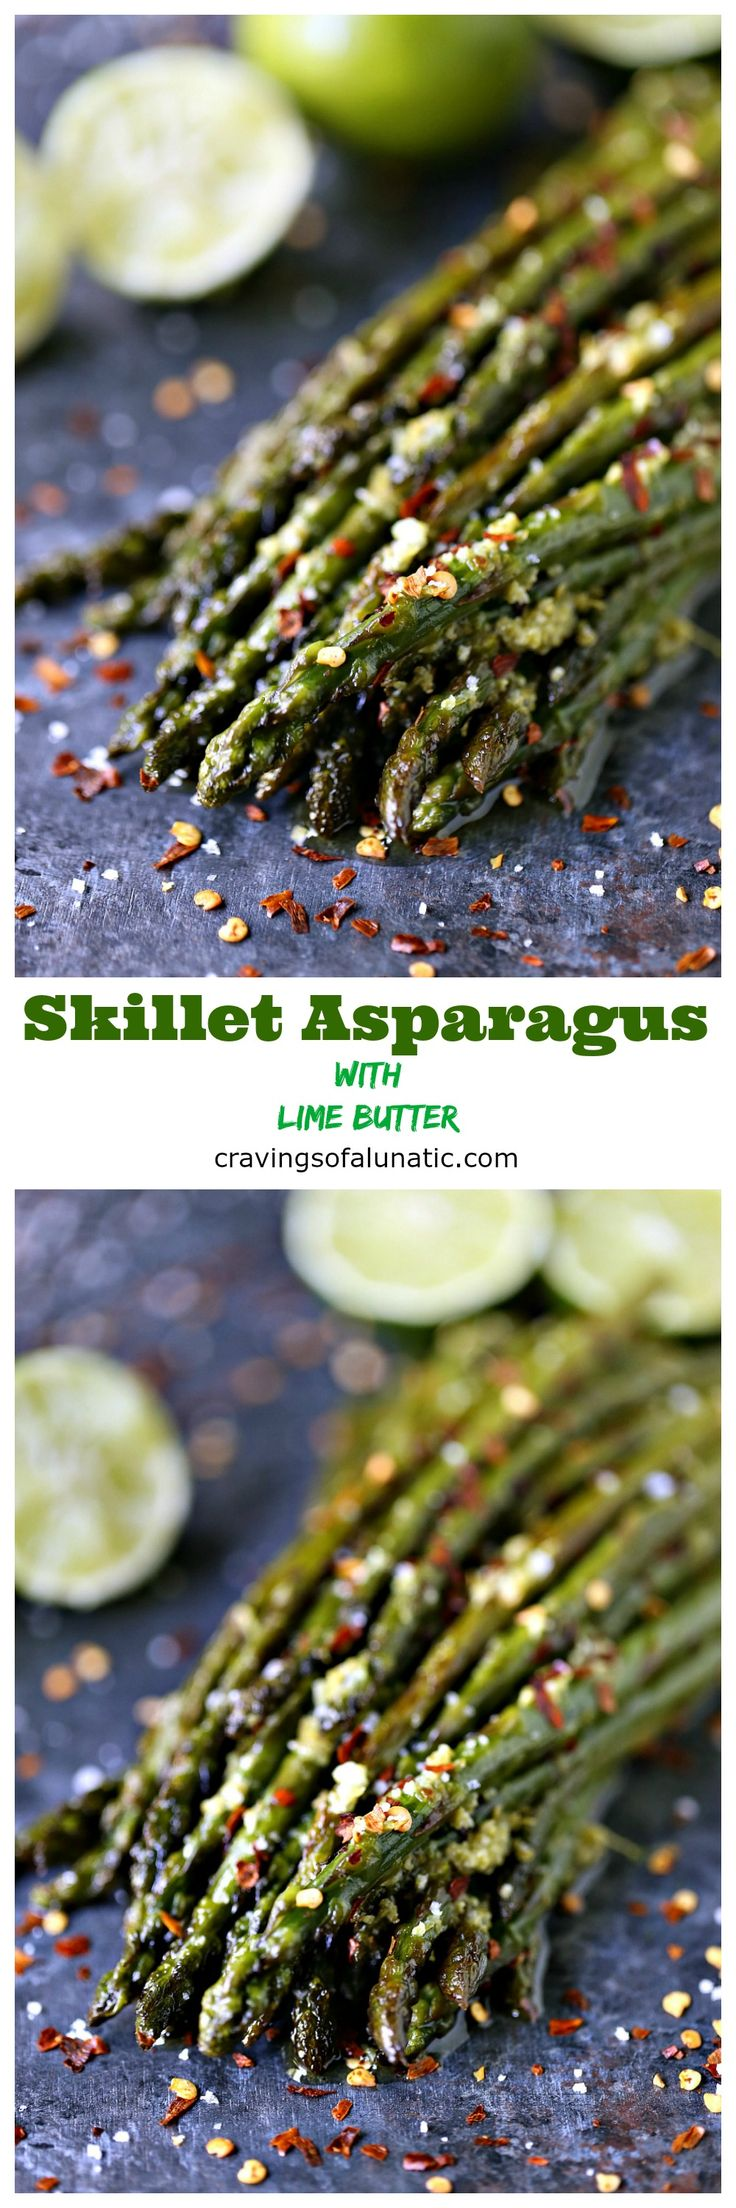 "Skillet Asparagus with Lime Butter from cravingsofalunatic.com- Asparagus season is full swing so enjoy every minute of it. This skillet asparagus is a quick and tasty side dish that will get rave reviews. My family voted it the ""Best Asparagus Ever""! #bornonthefarm #sponsored"